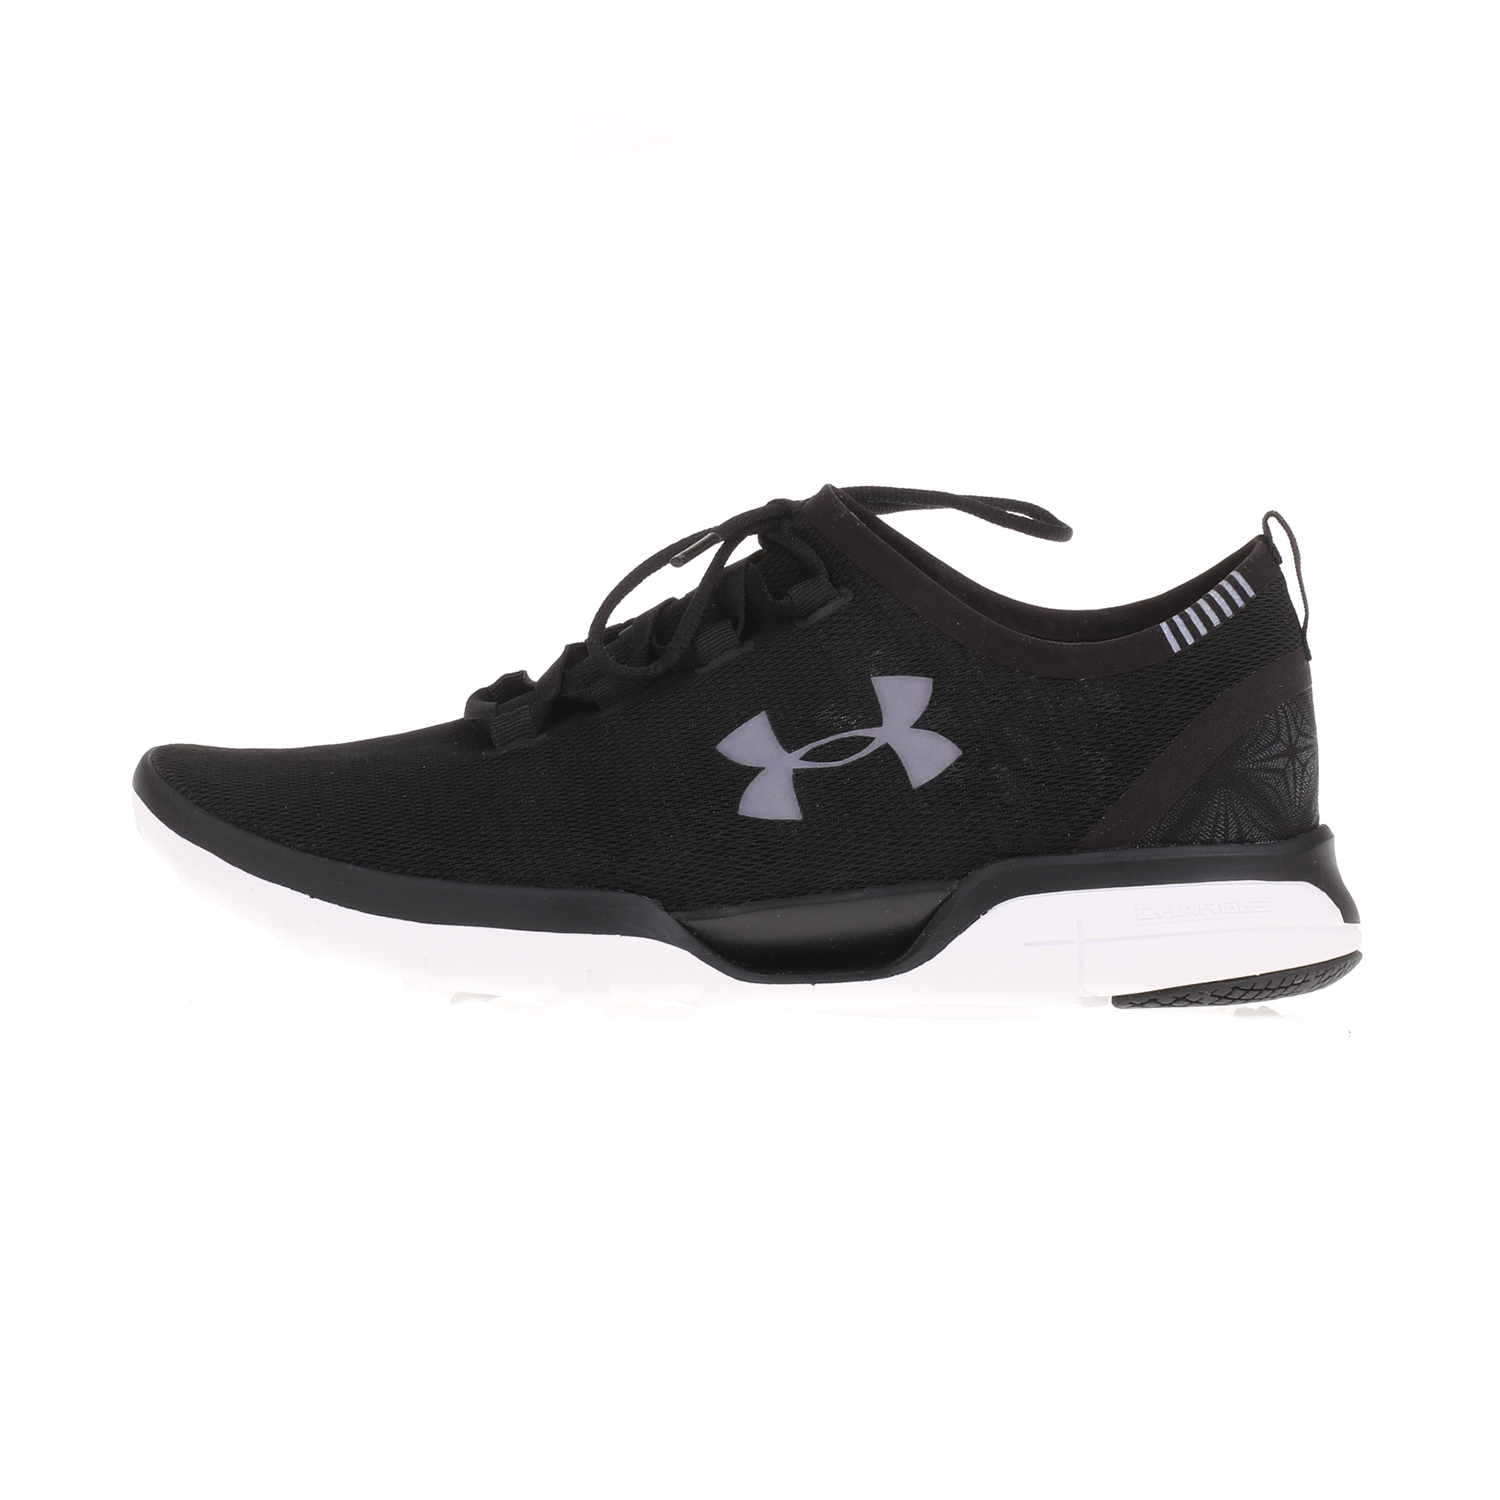 UNDER ARMOUR – Ανδρικά running παπούτσια Charged CoolSwitch UNDER ARMOUR μαύρα